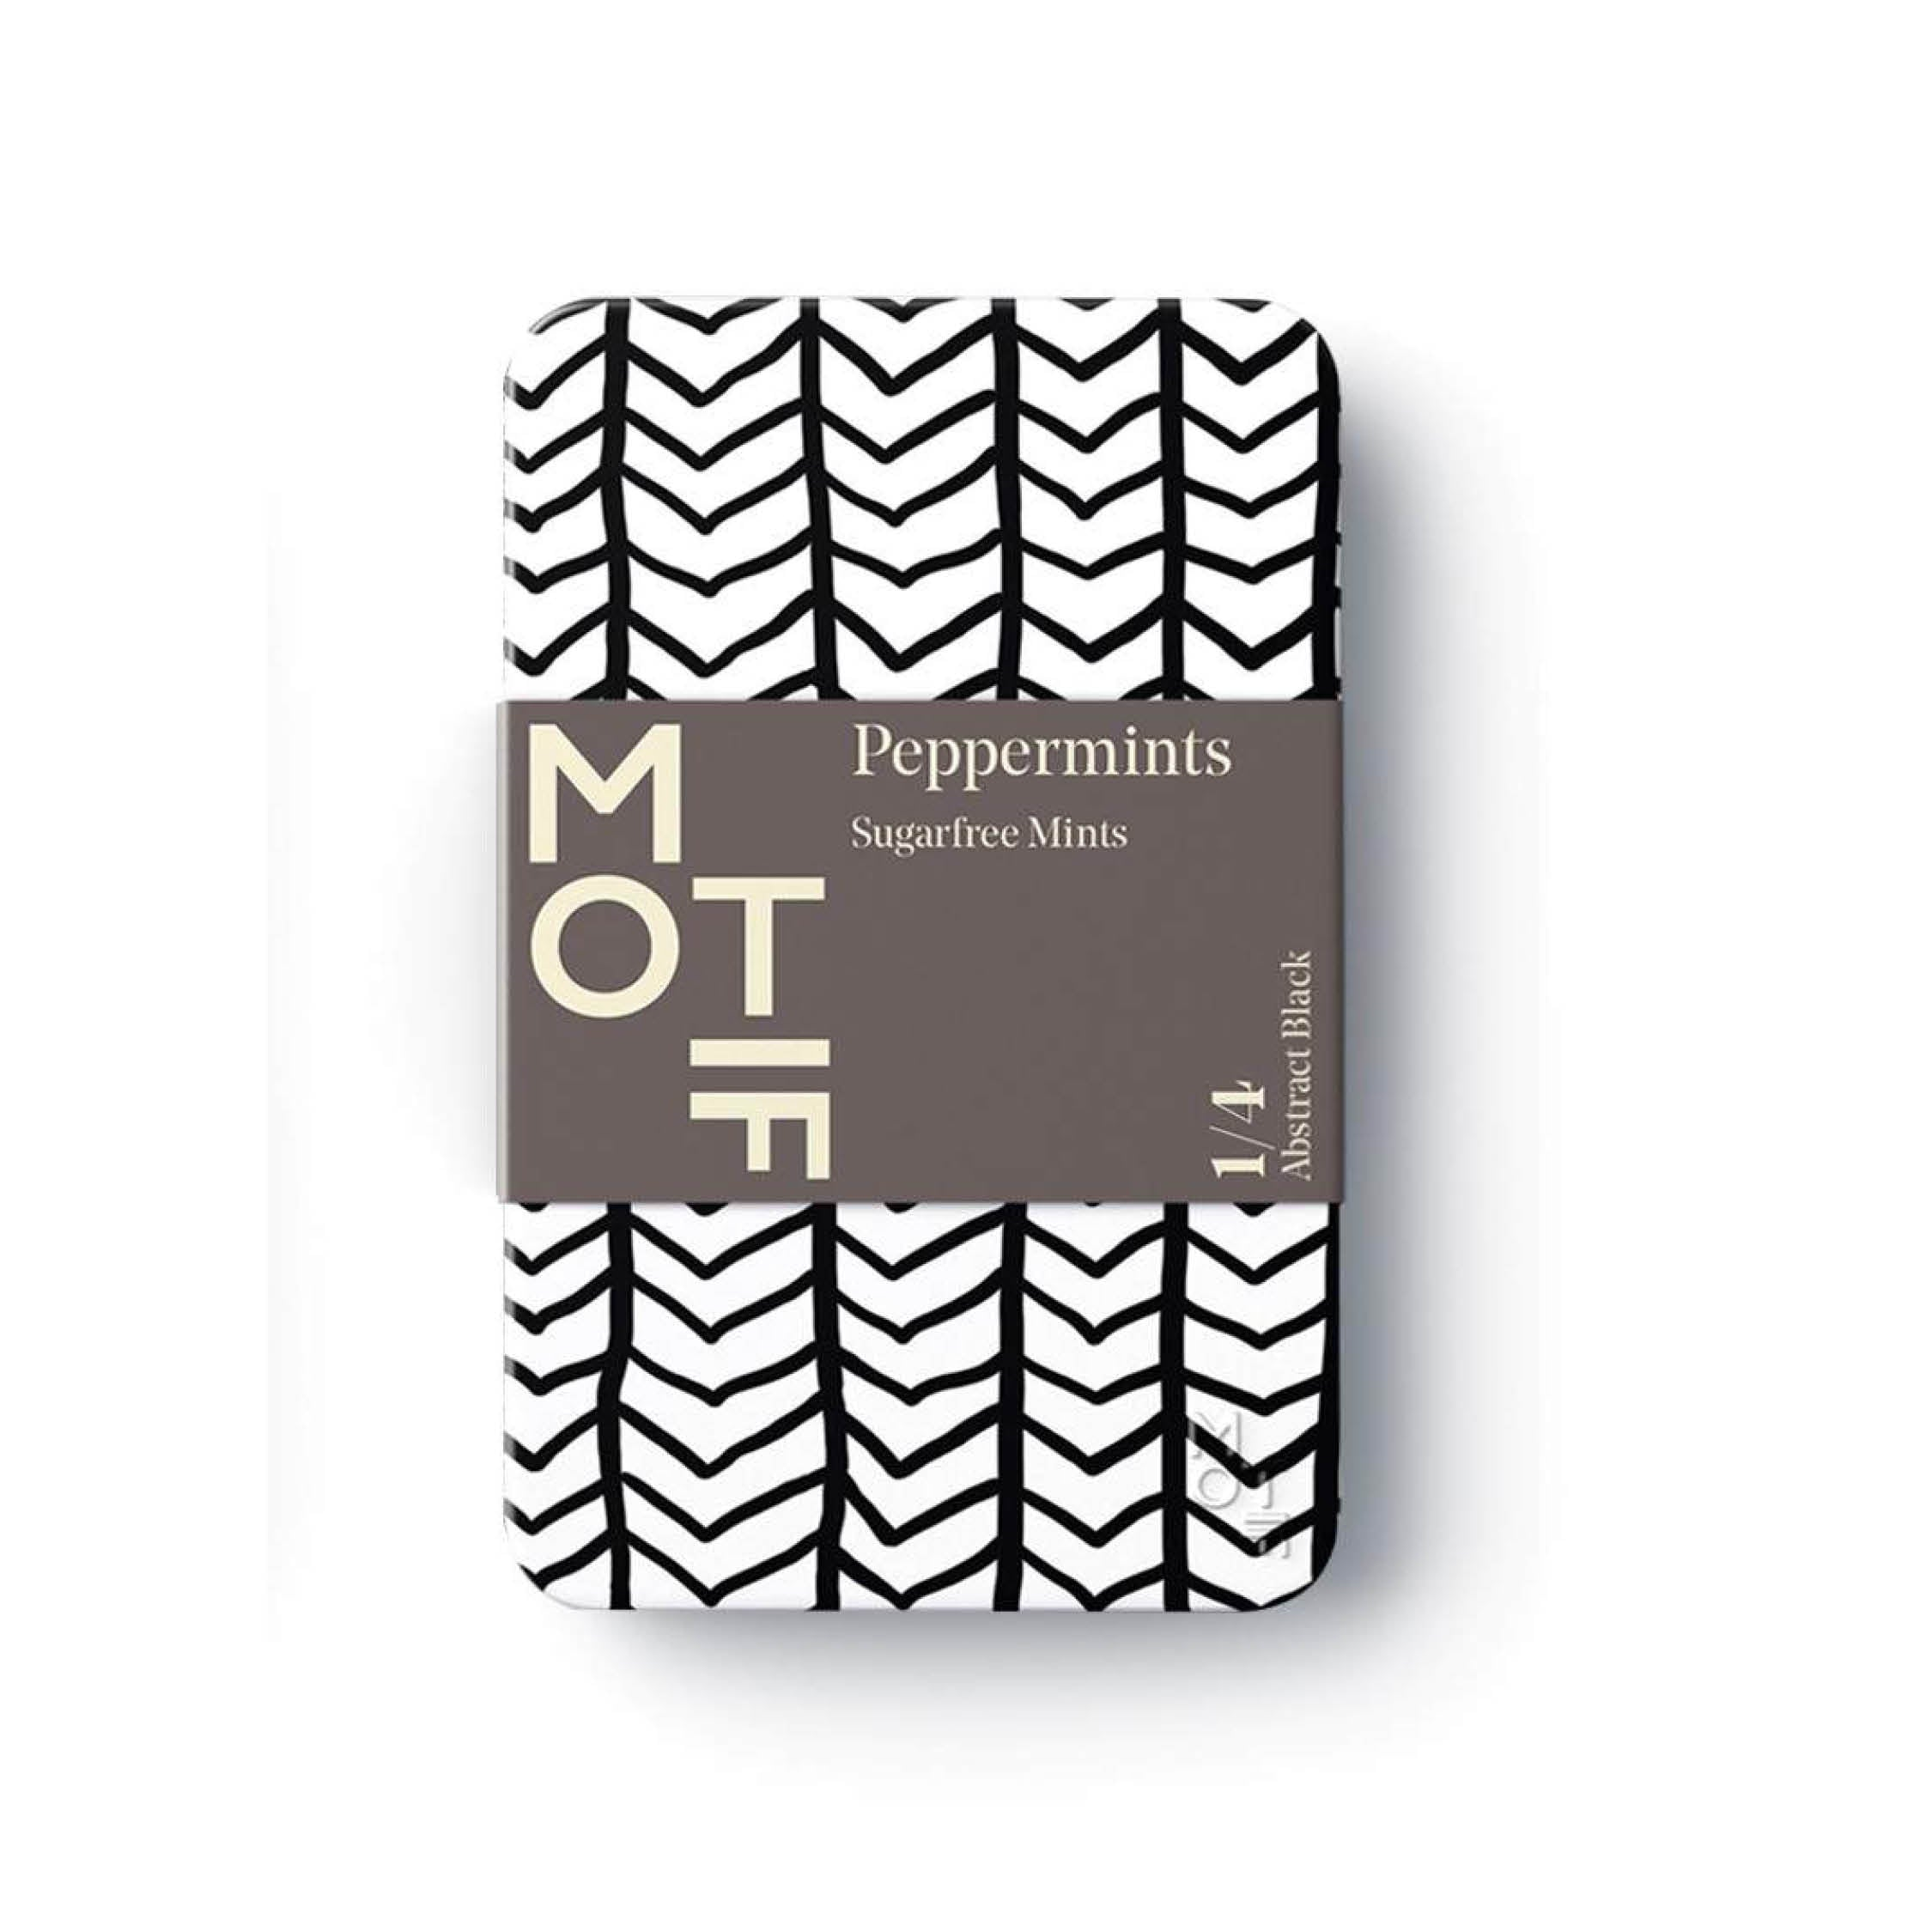 Peppermints - Abstract Black & White Tin